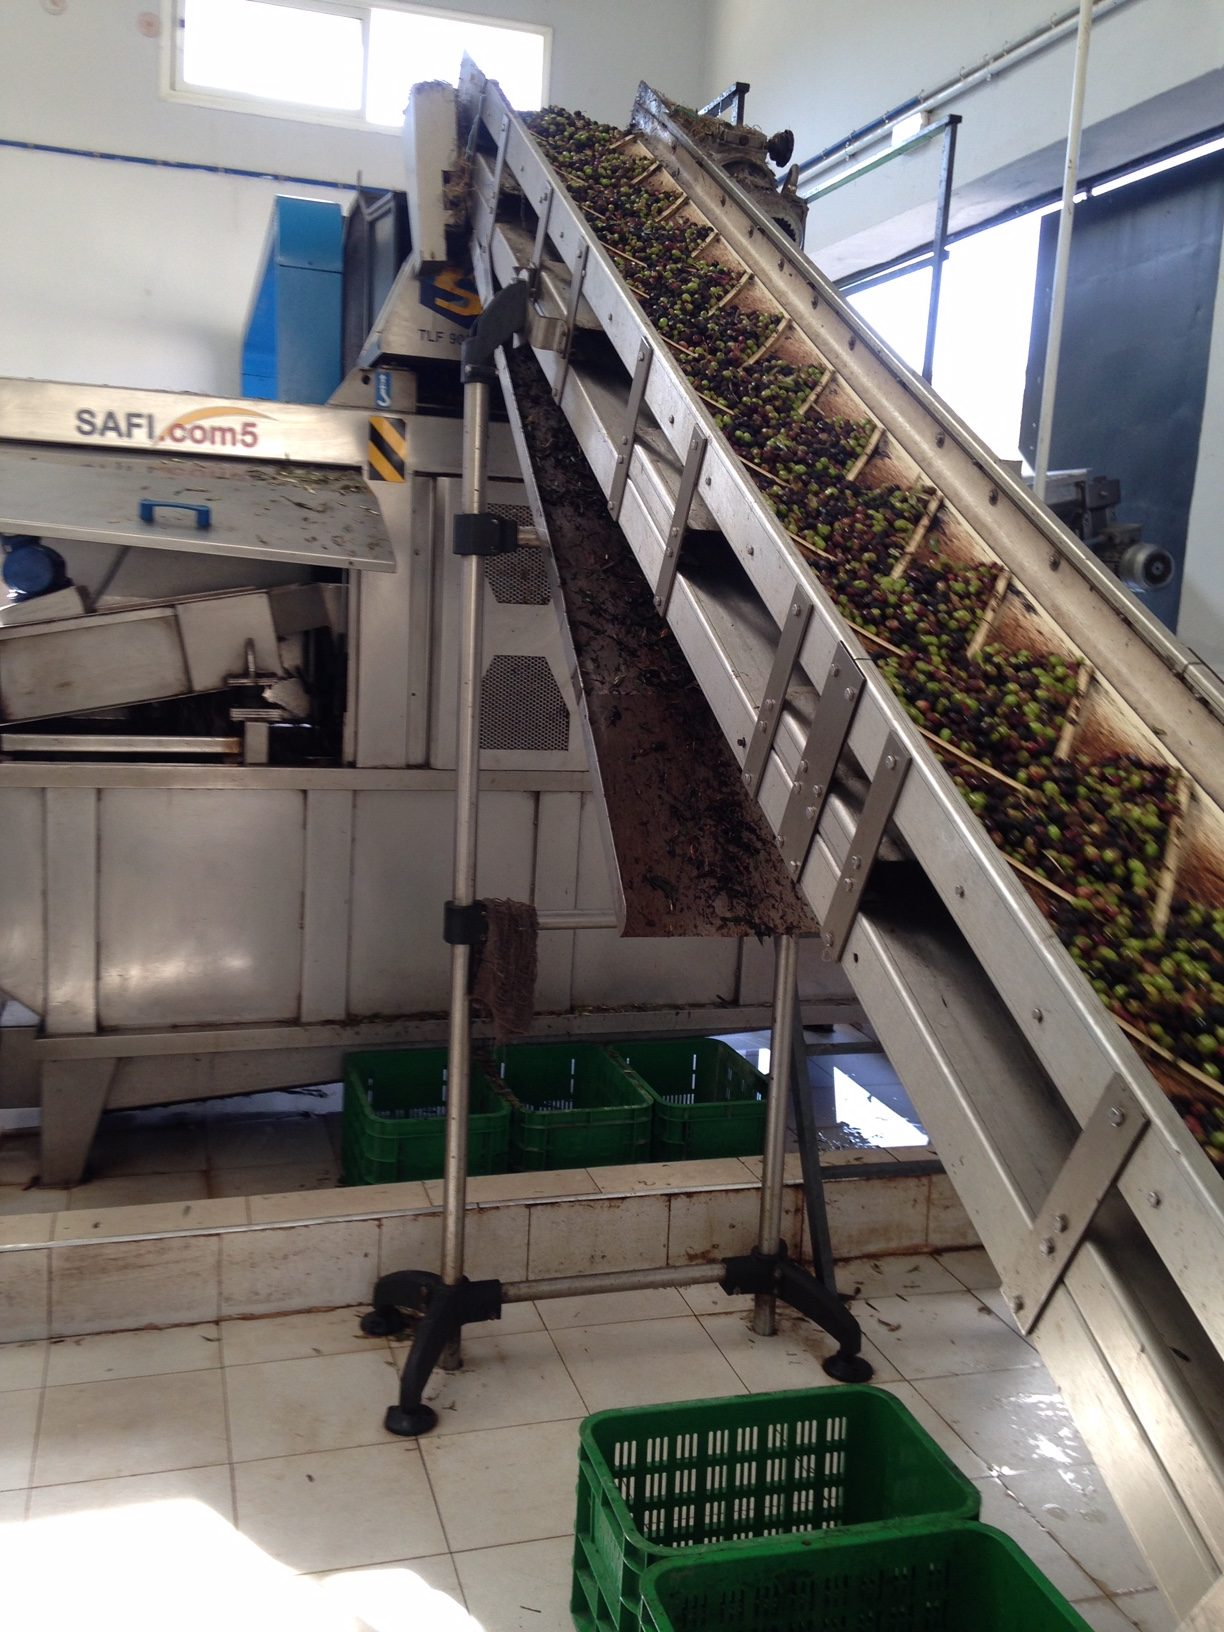 Machine crushing olives for processing.